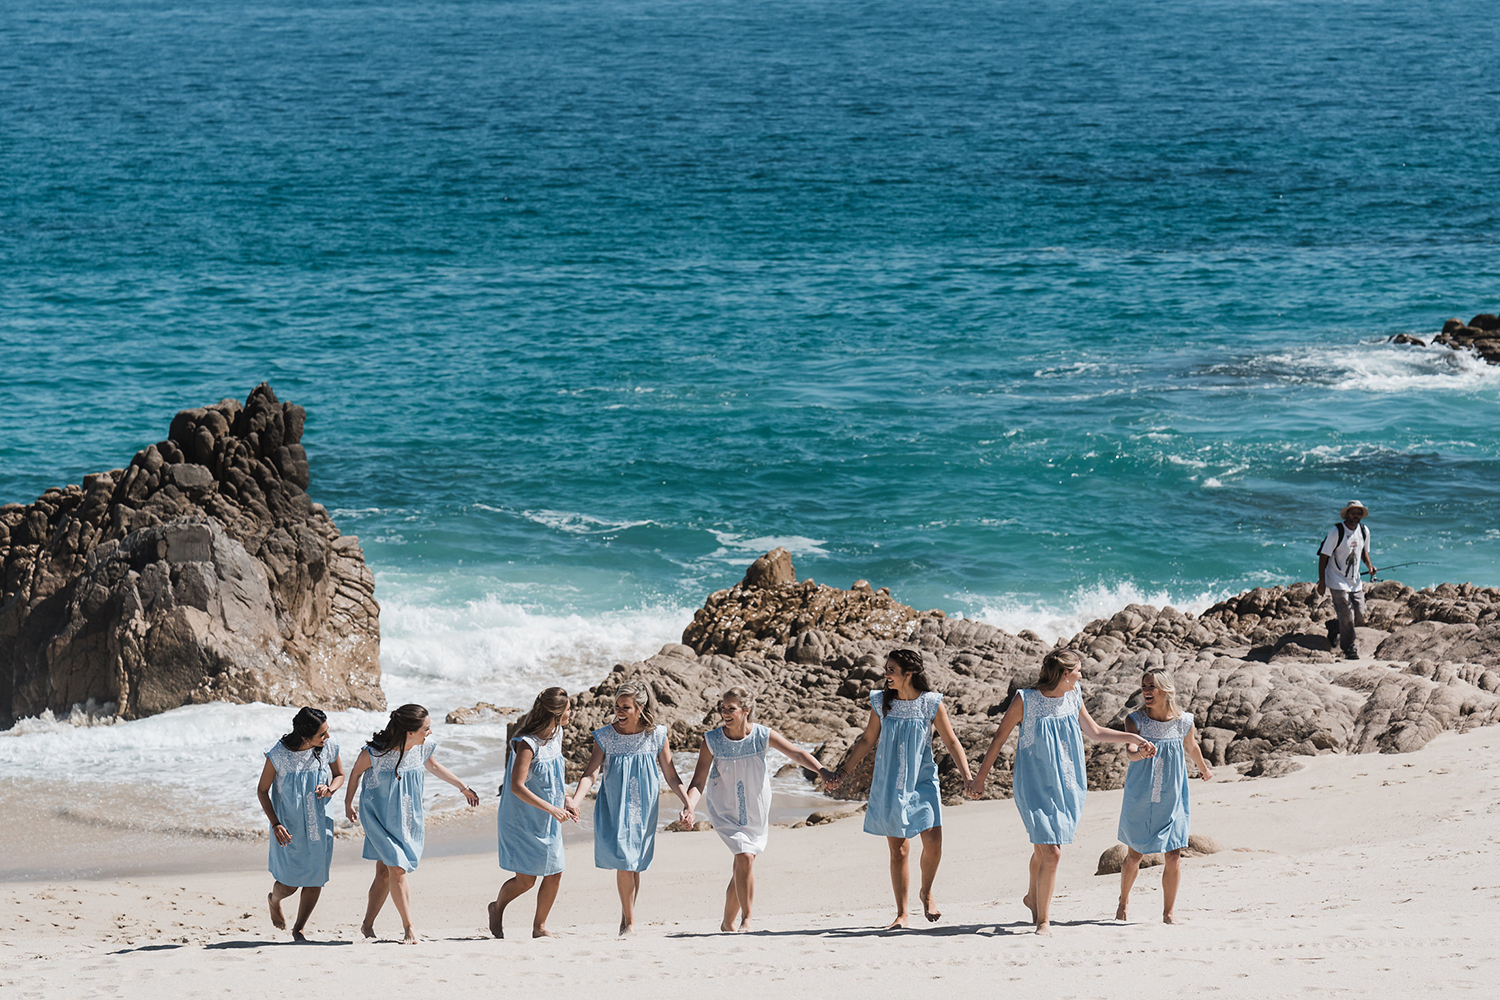 bridesmaids and bride before the wedding ceremony - beach photography